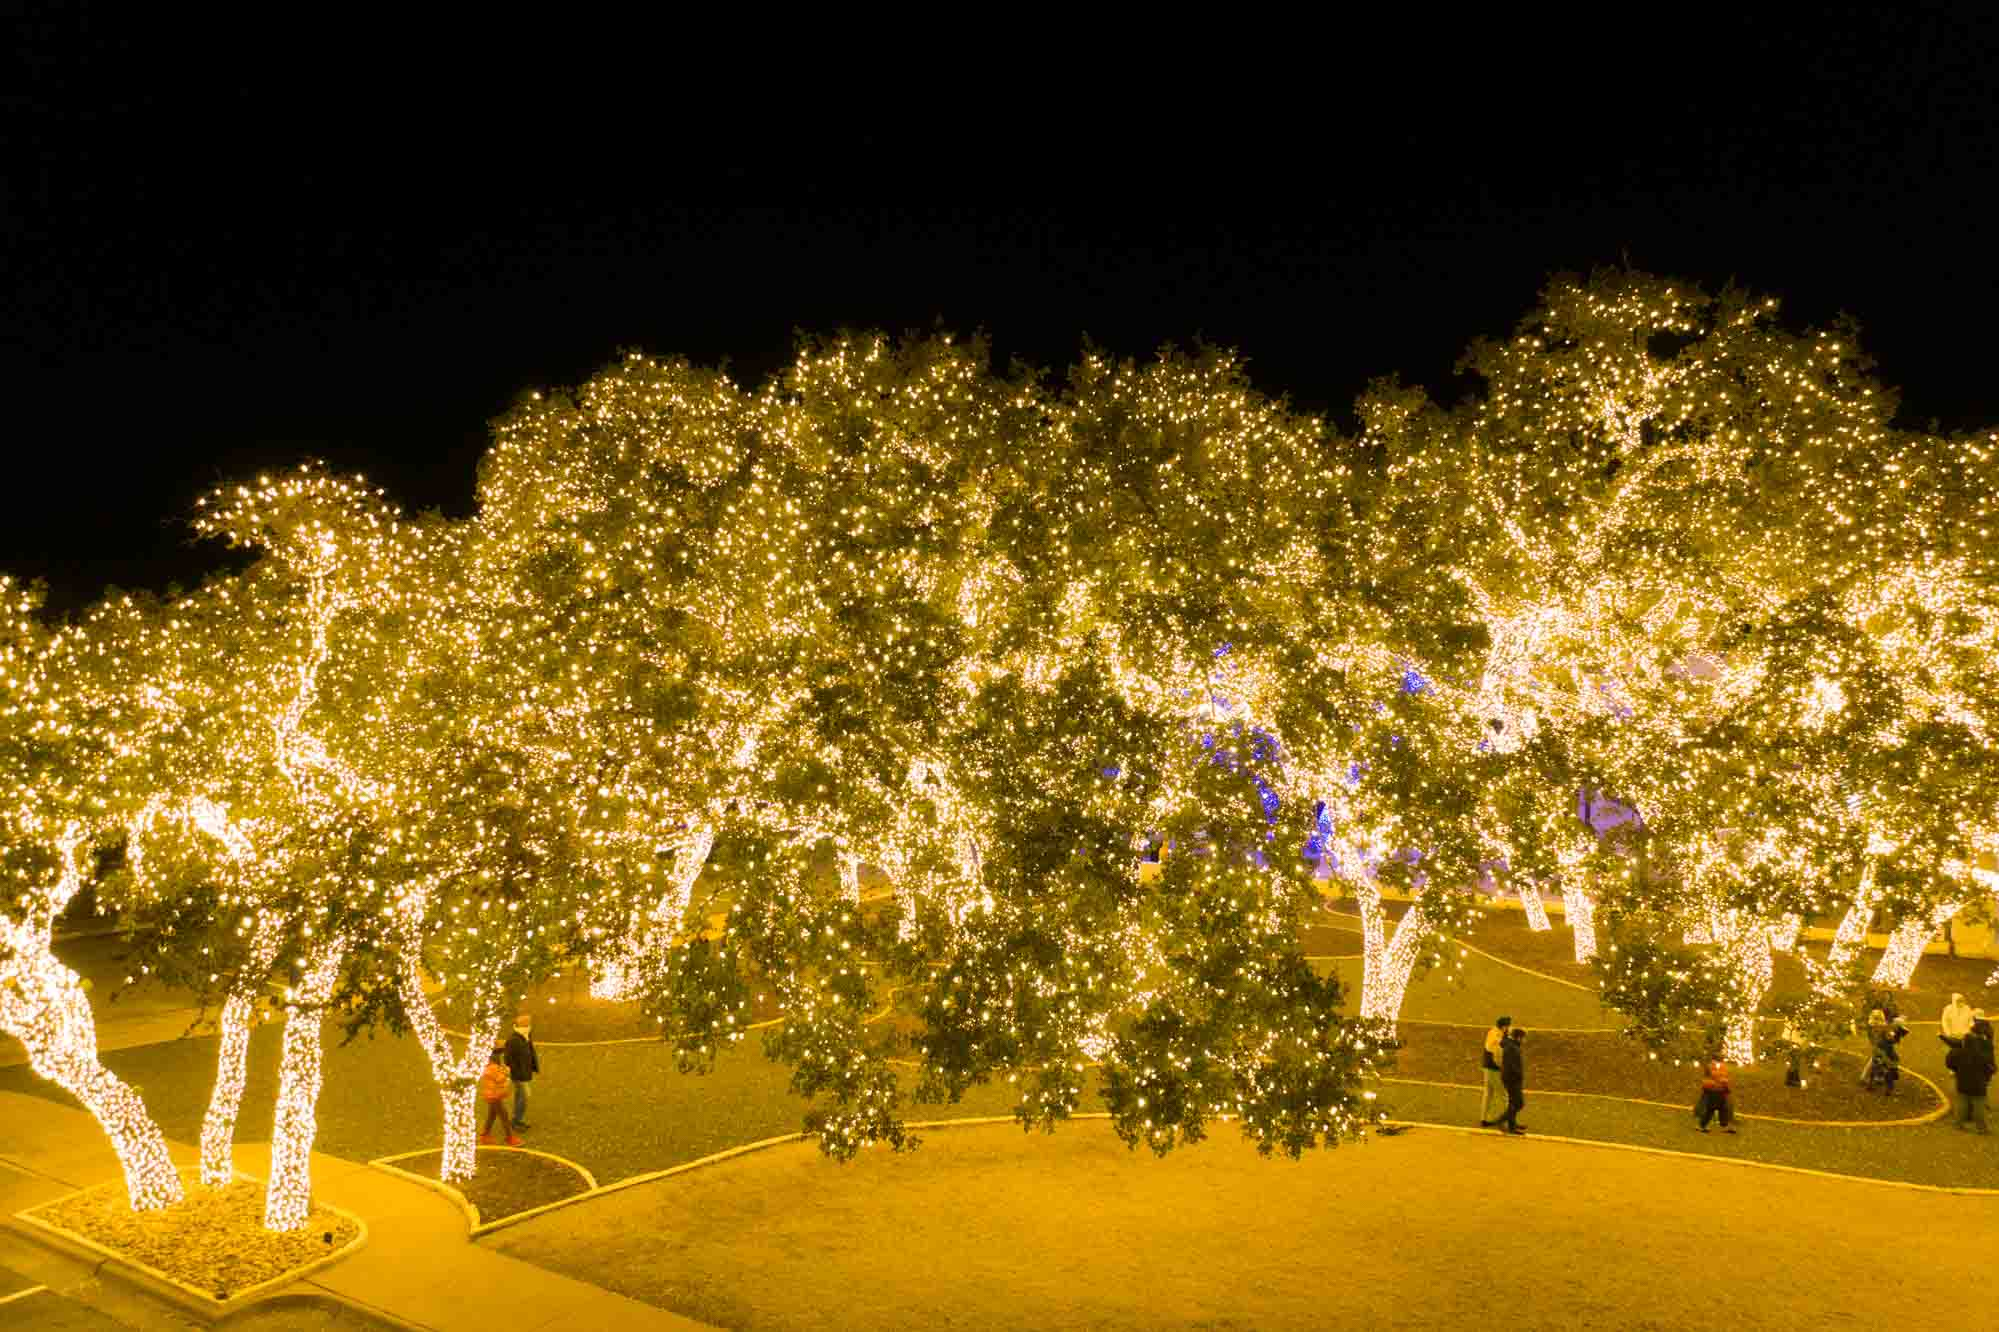 People walking under trees covered in white fairy lights at night